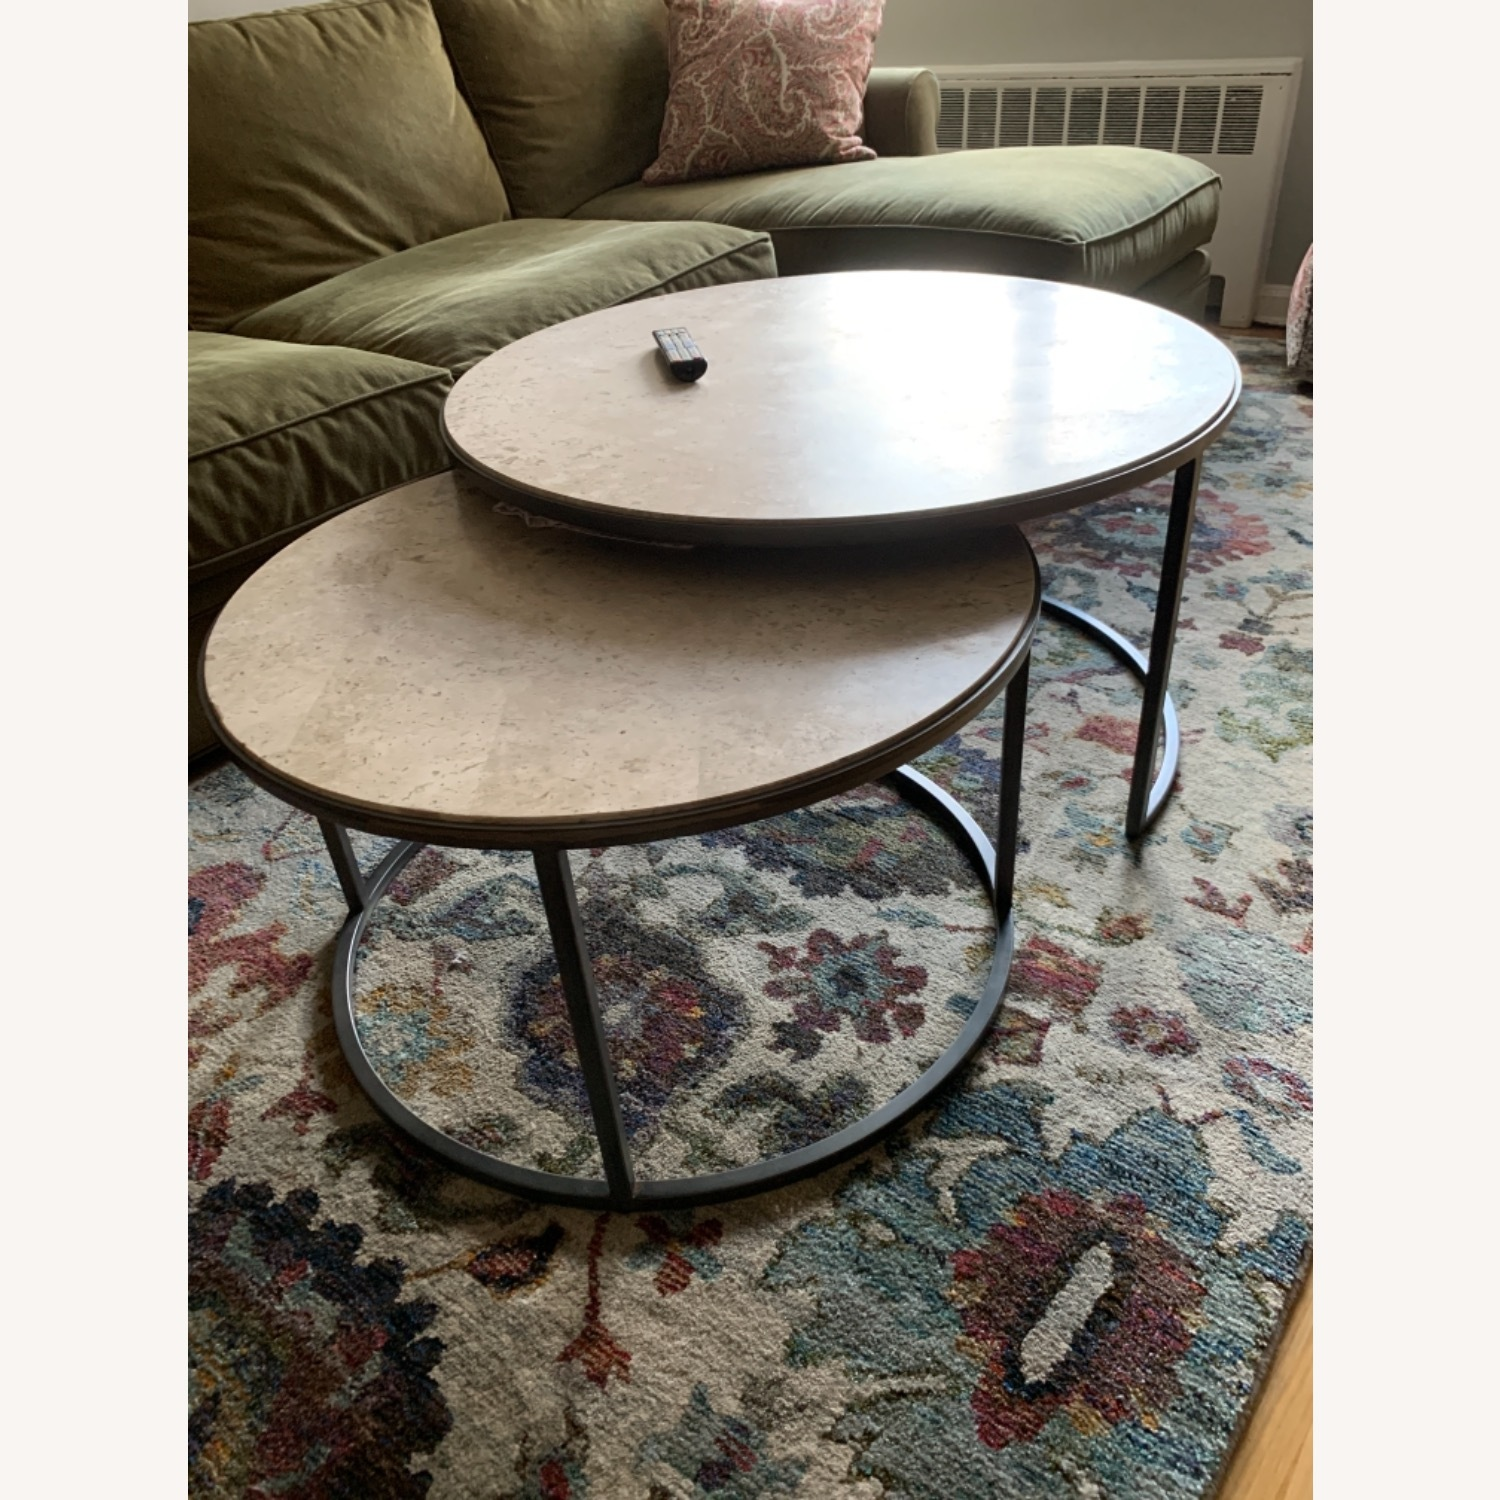 Travertine Marble Nesting Coffee Tables - image-2